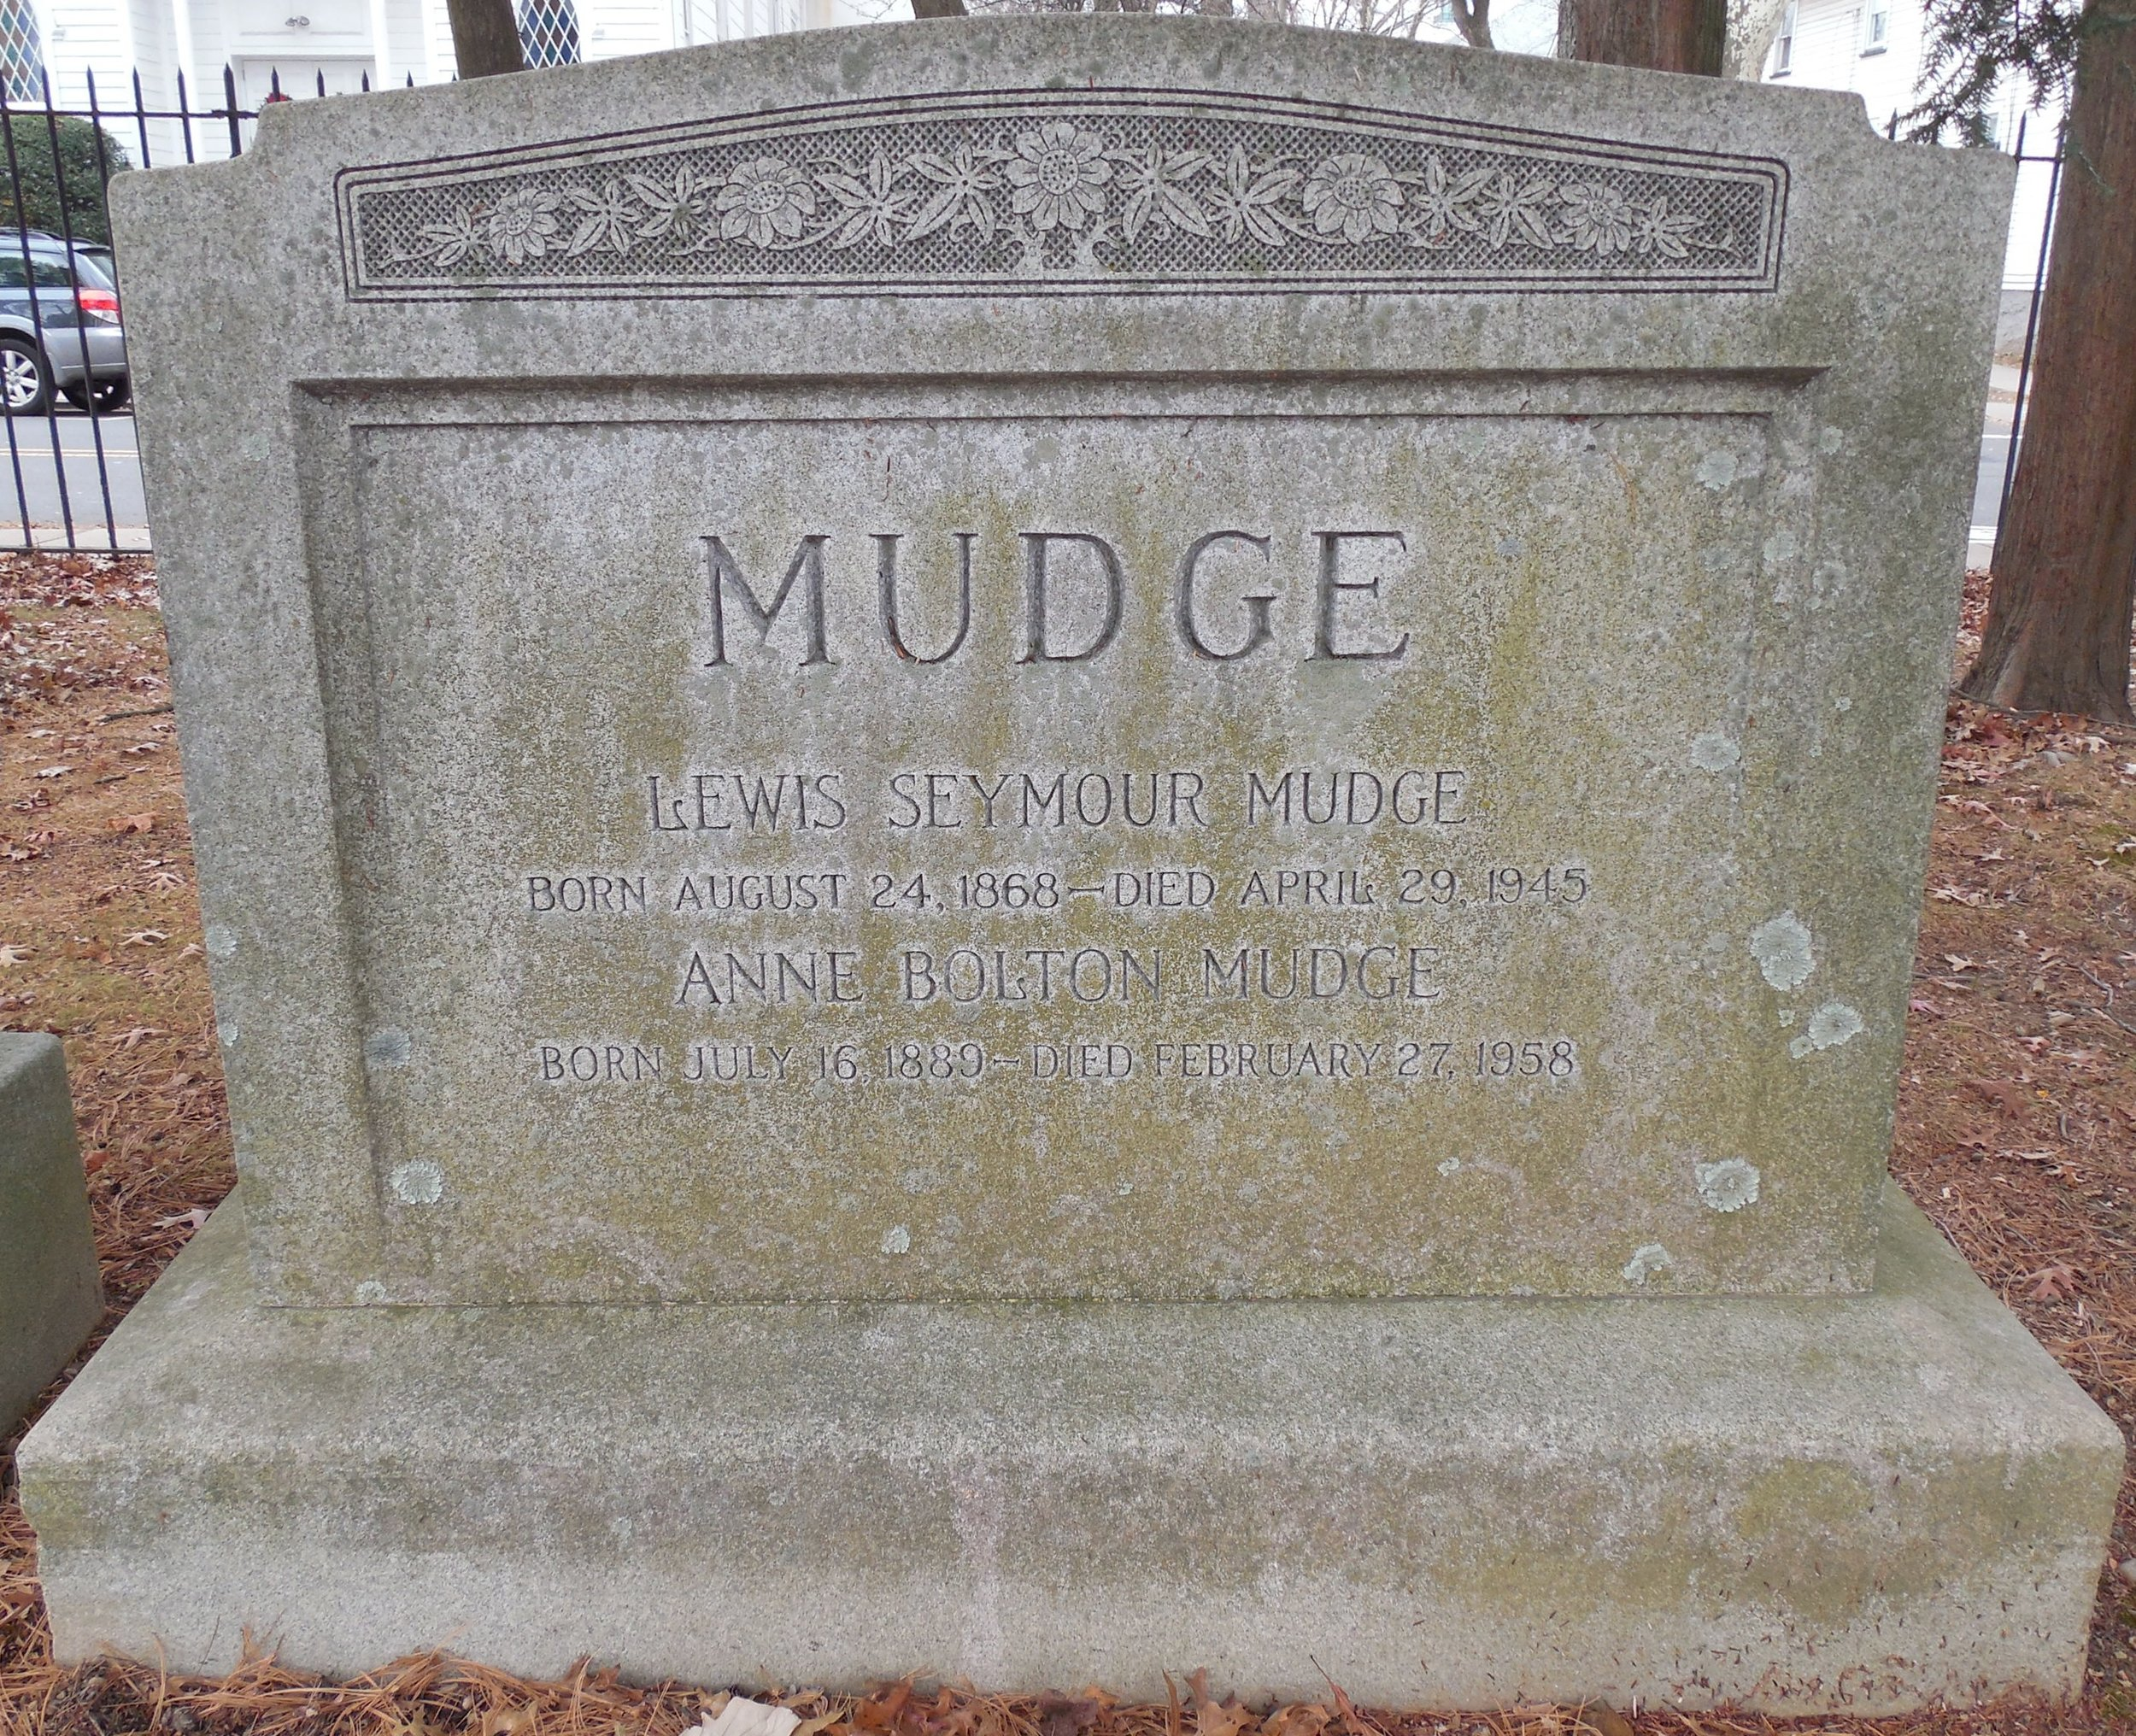 Lewis Seymour Mudge is buried at Princeton Cemetery, Princeton, New Jersey.